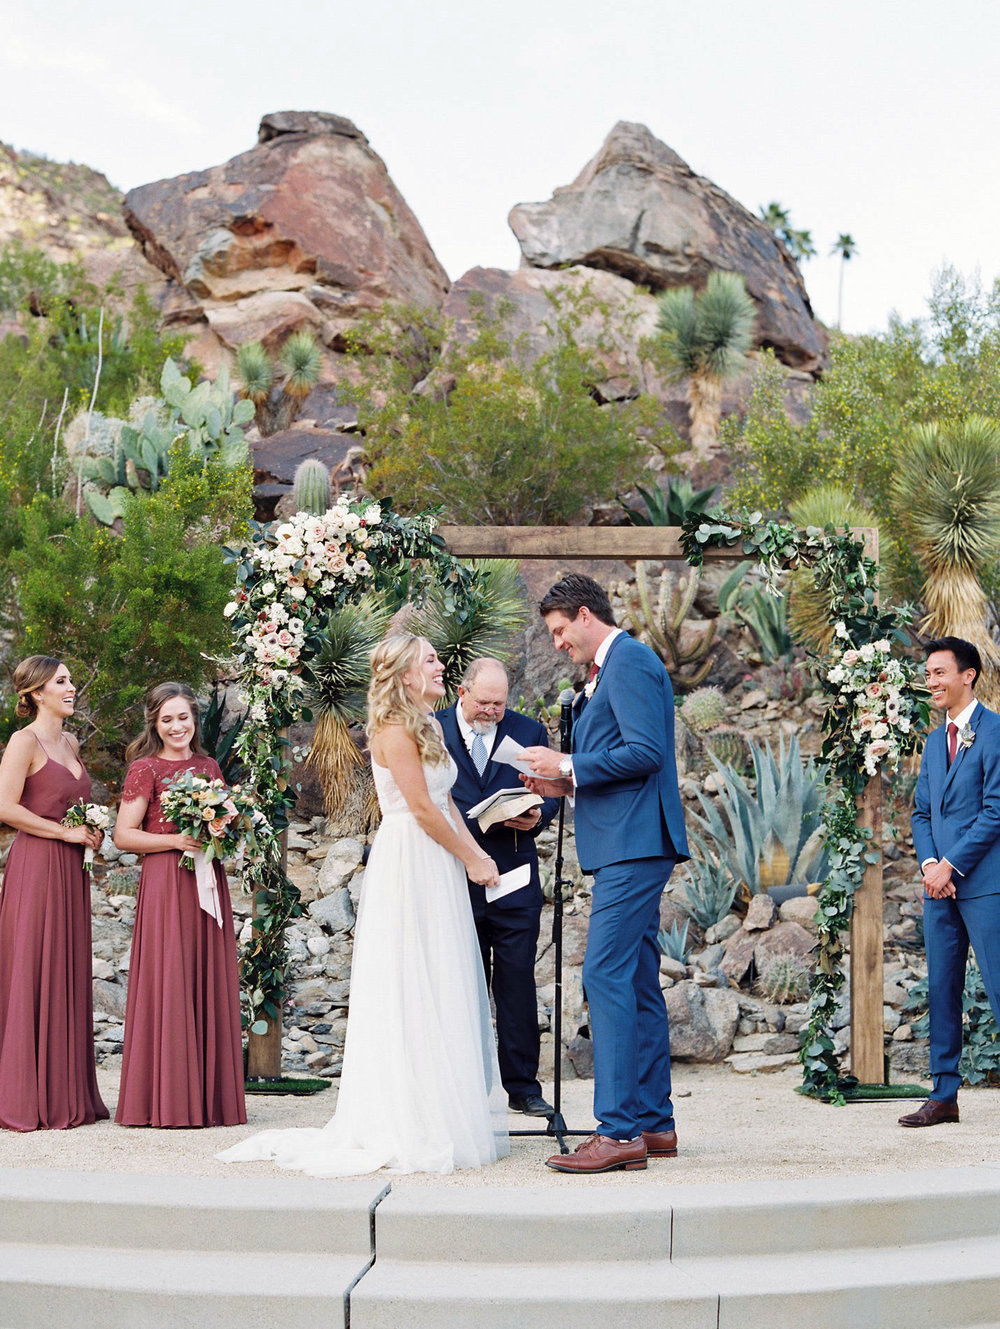 PalmSpringsWeddingPhotographer_RachelSolomonPhotography_Colony29Wedding-36.jpg